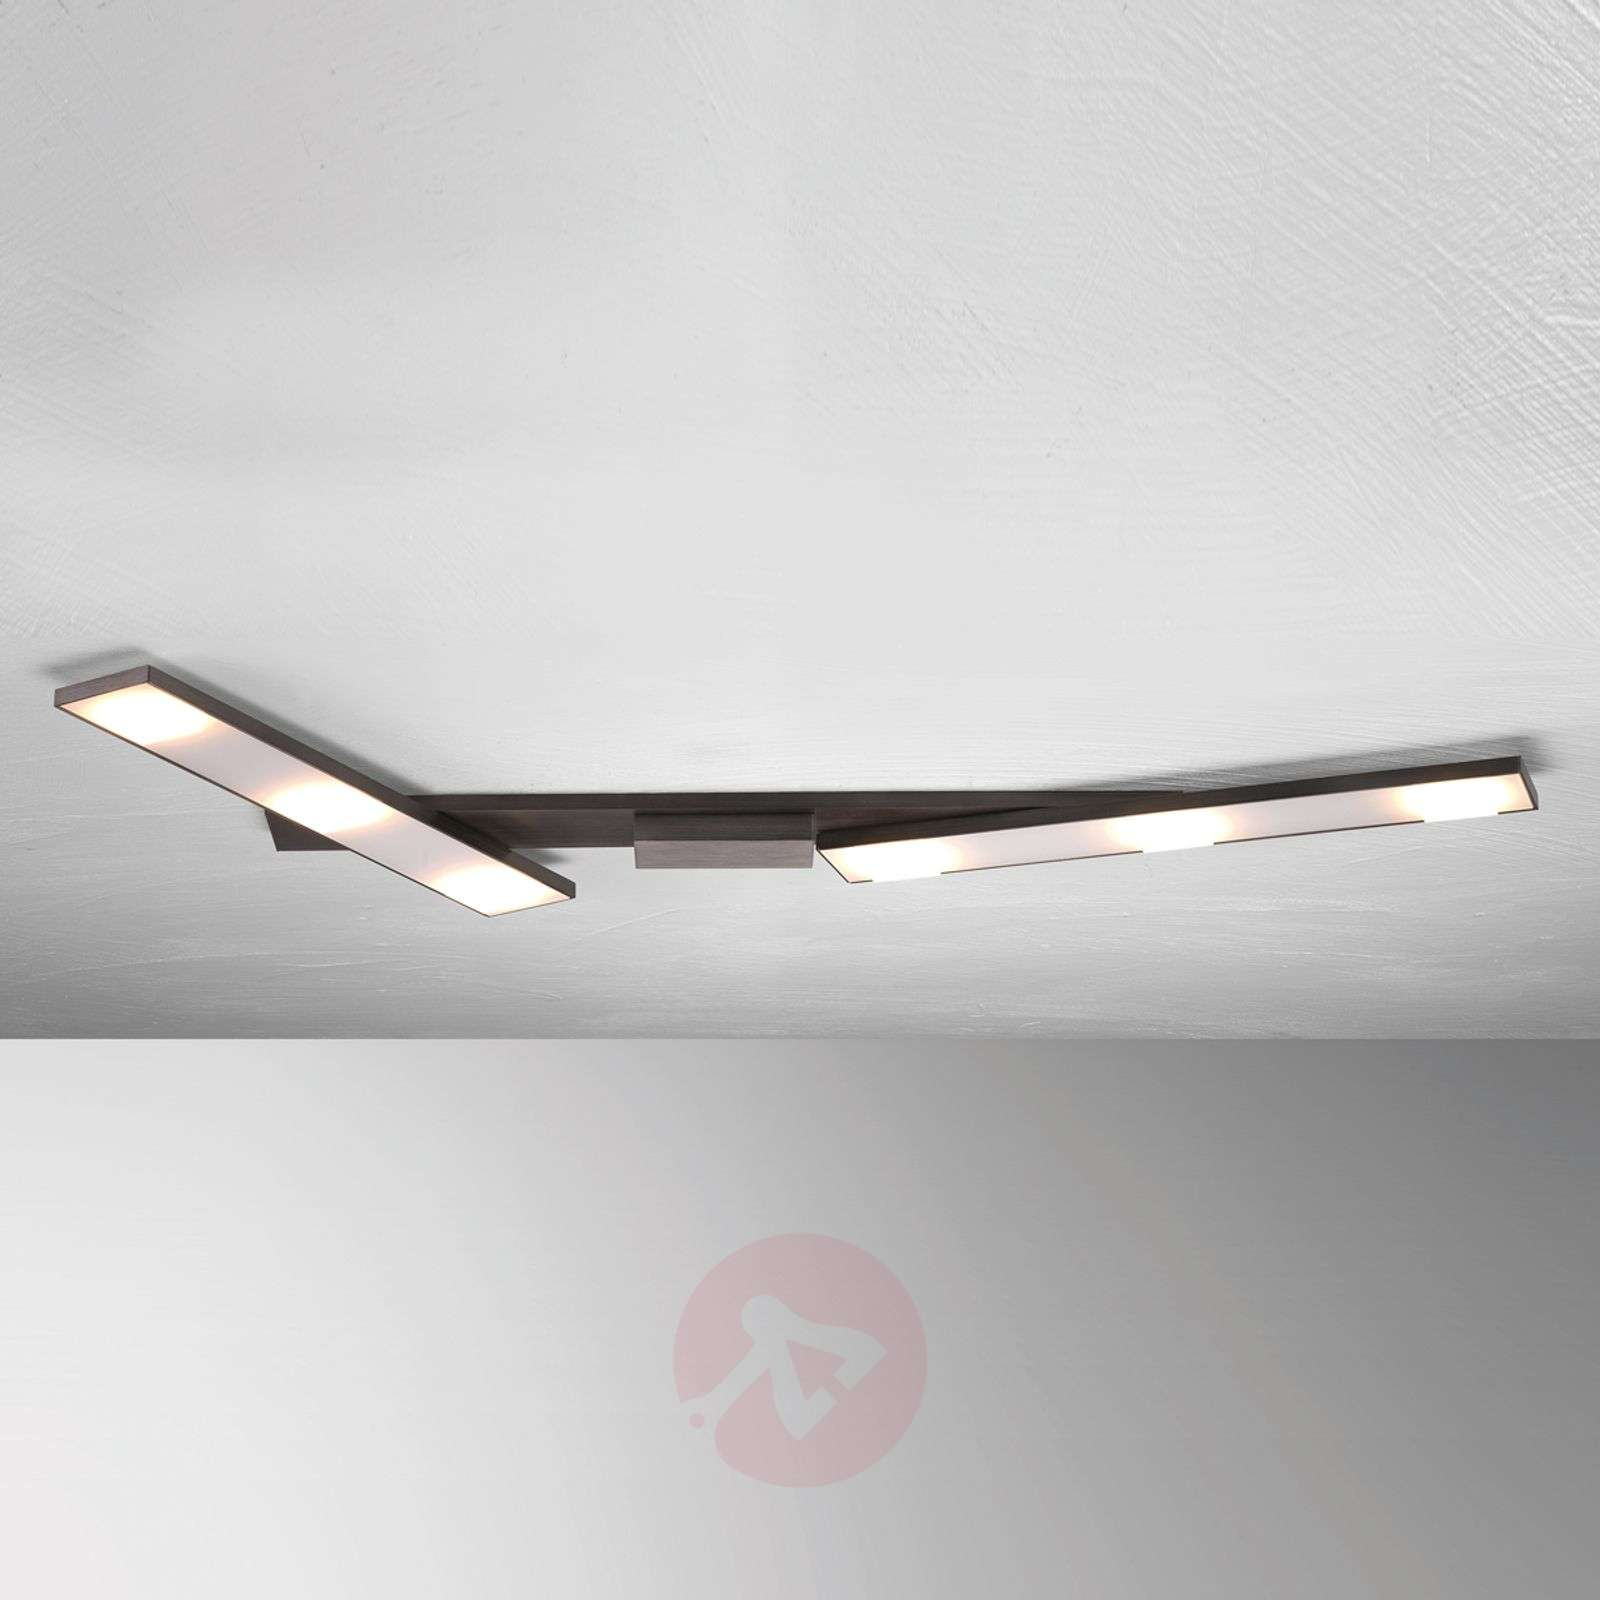 Odchylana lampa sufitowa LED Slight, antracyt